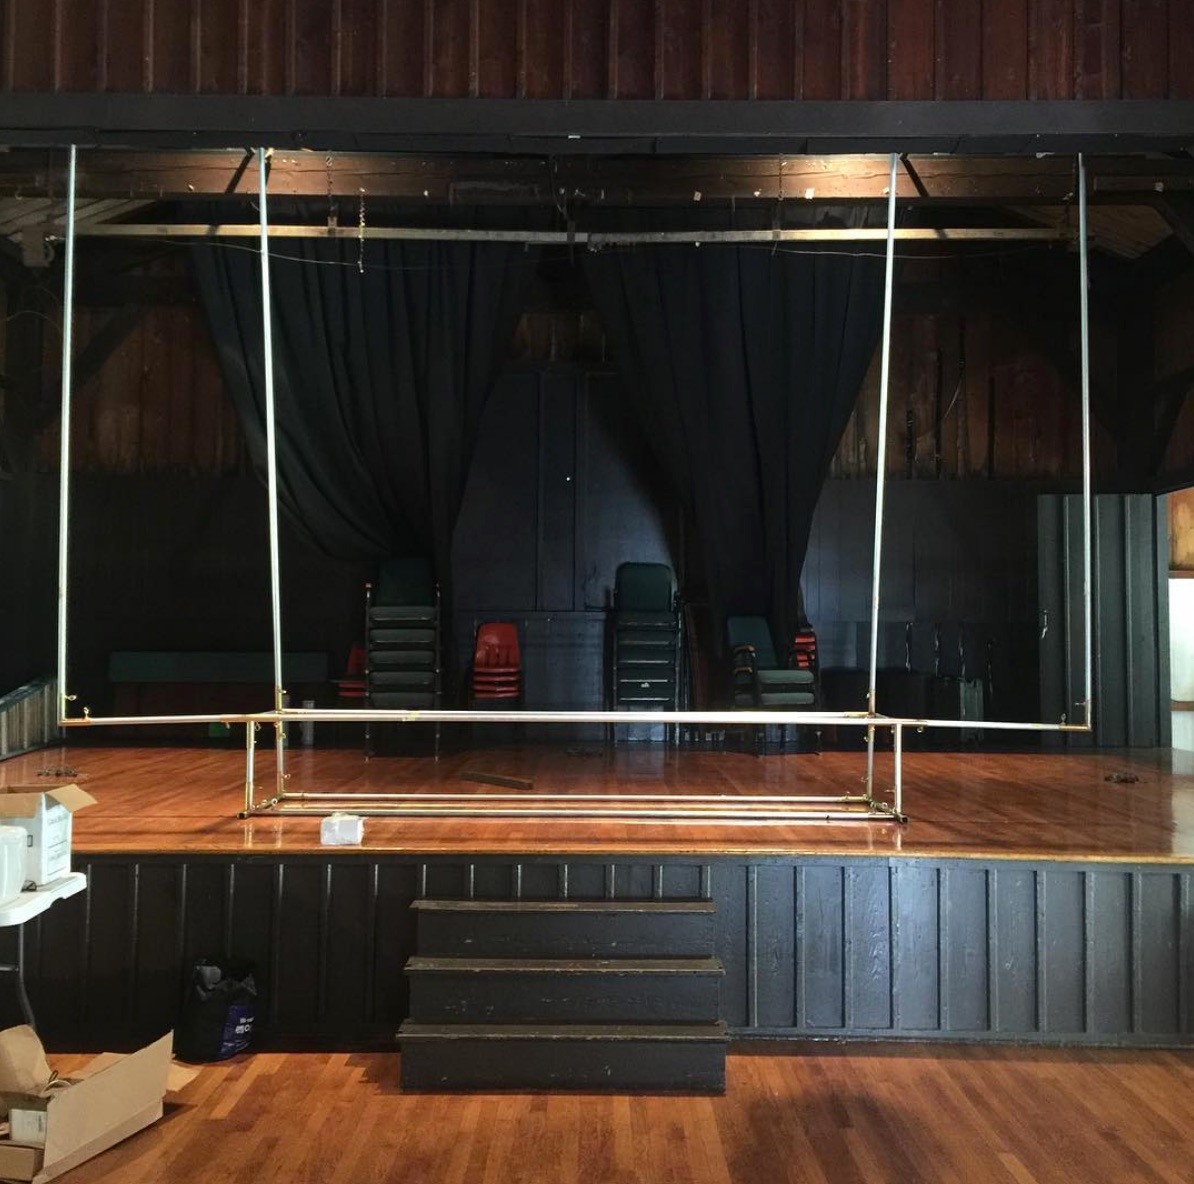 Building of the screen. Photo Credit: Beacon Independent Film Festival